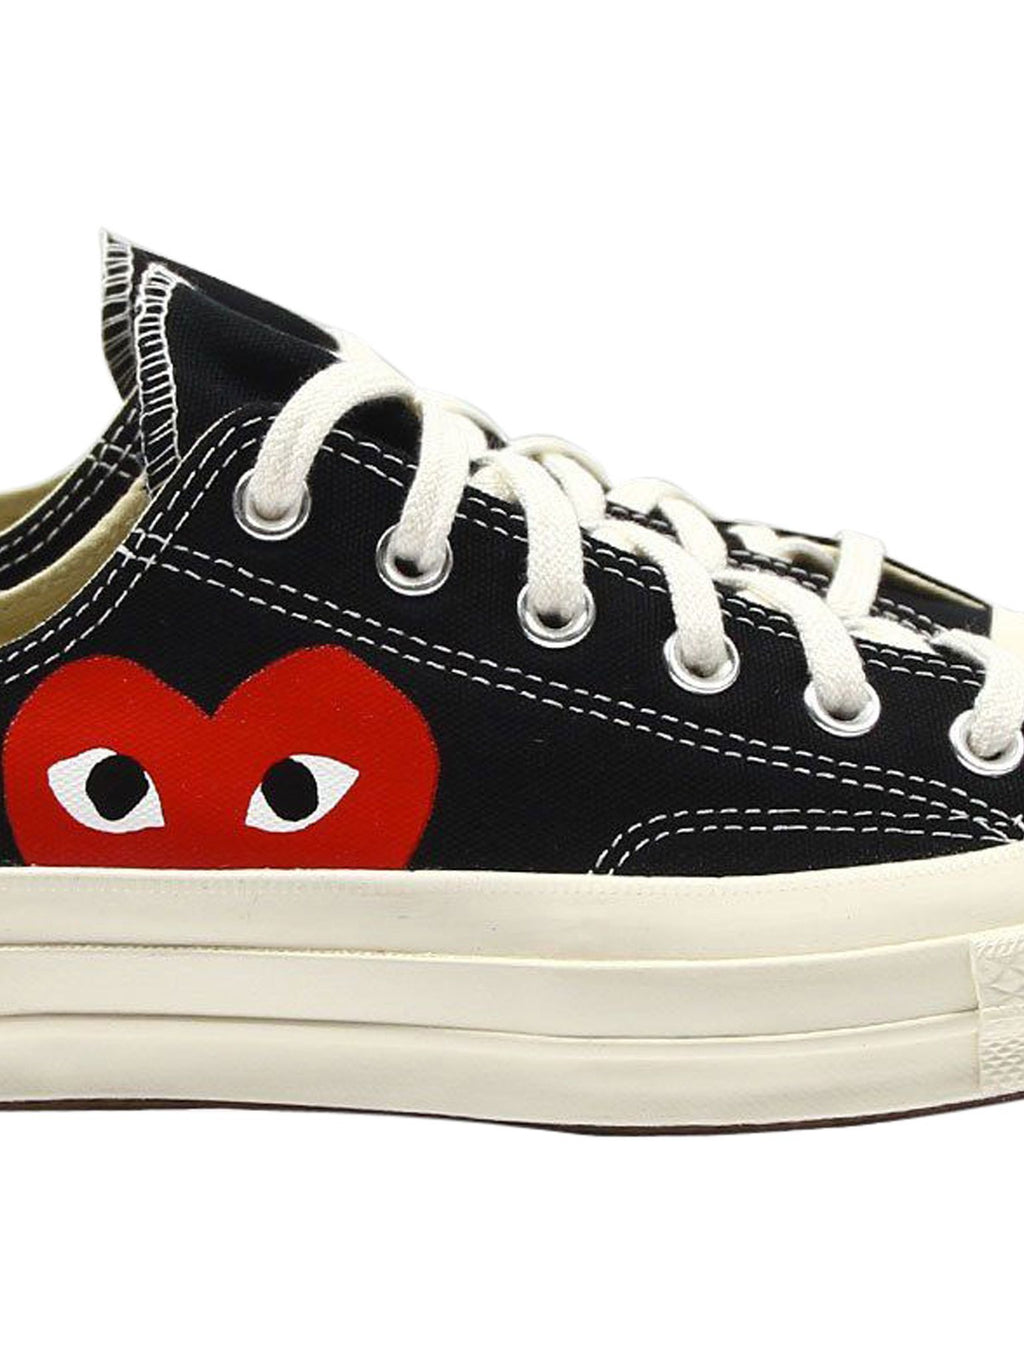 Black Converse Chuck Taylor Low Top Sneakers